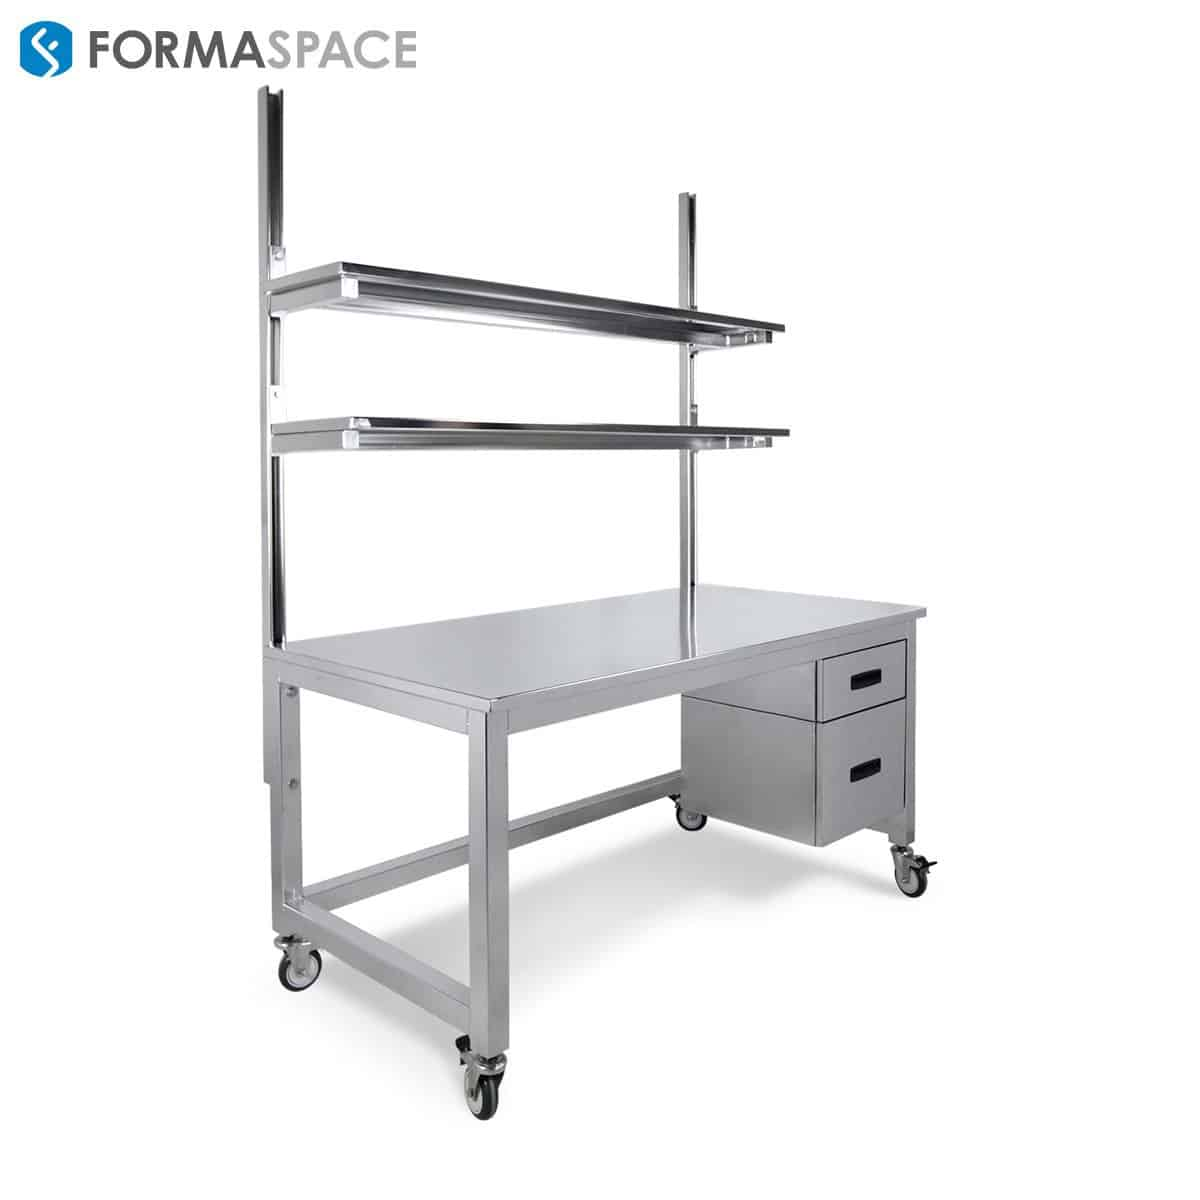 electropolished stainless steel workbench with upper shelves